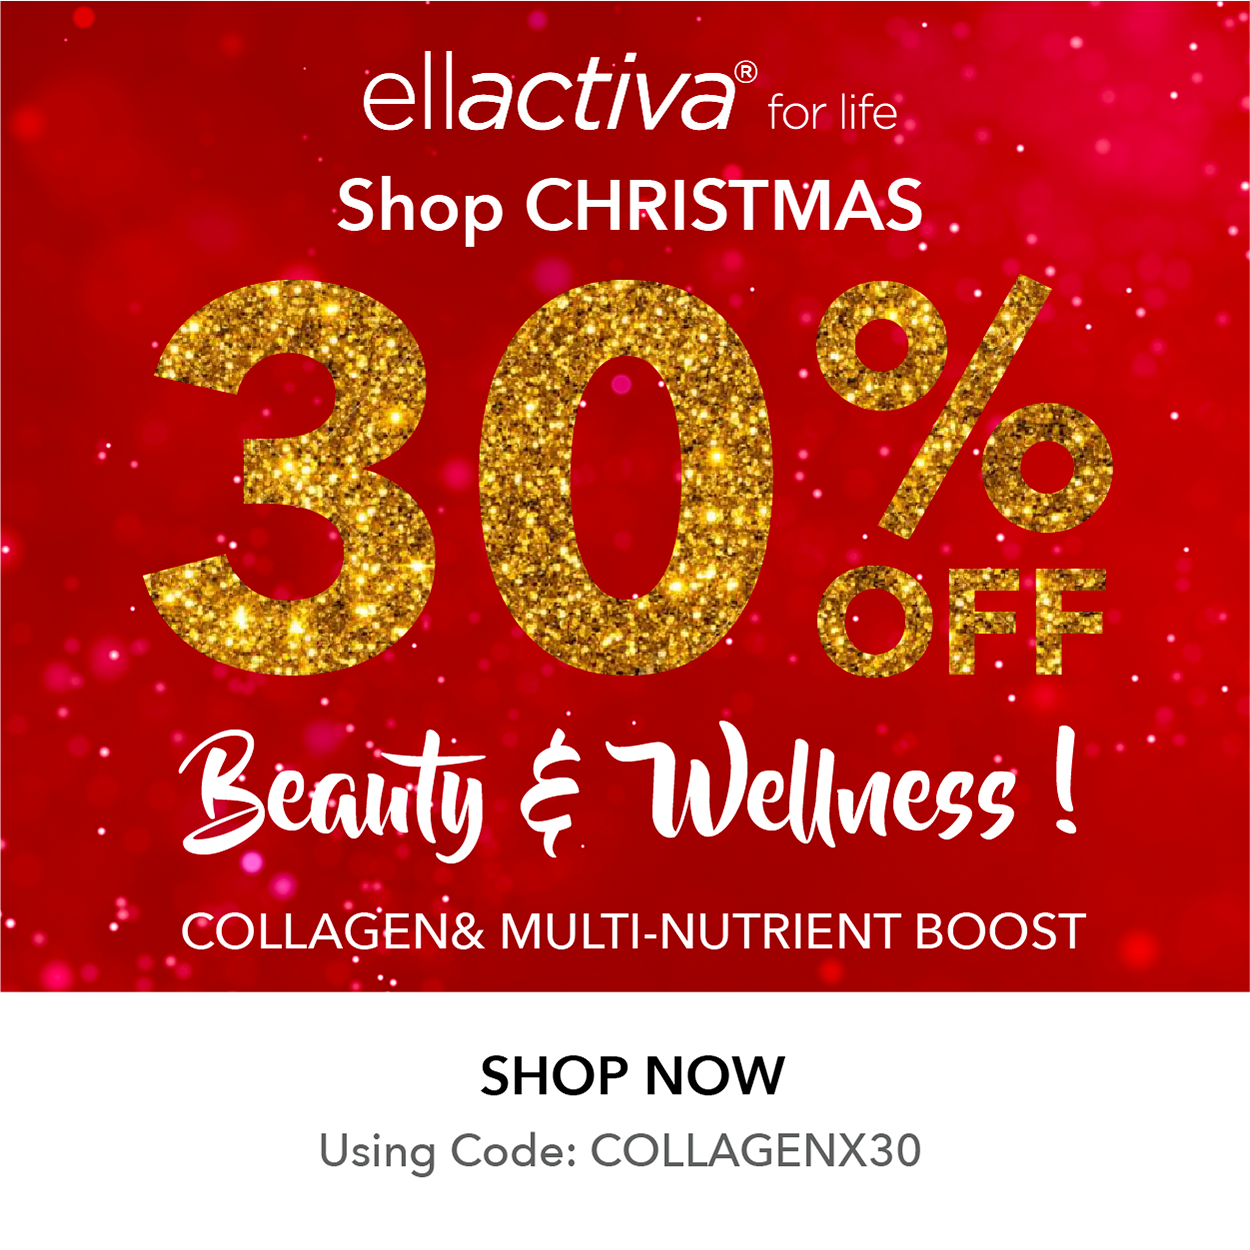 GRAB 30% OFF OUR COLLAGEN& RANGE & GIVE YOURSELF A BEAUTY & WELLNESS BOOST IN TIME FOR CHRISTMAS!